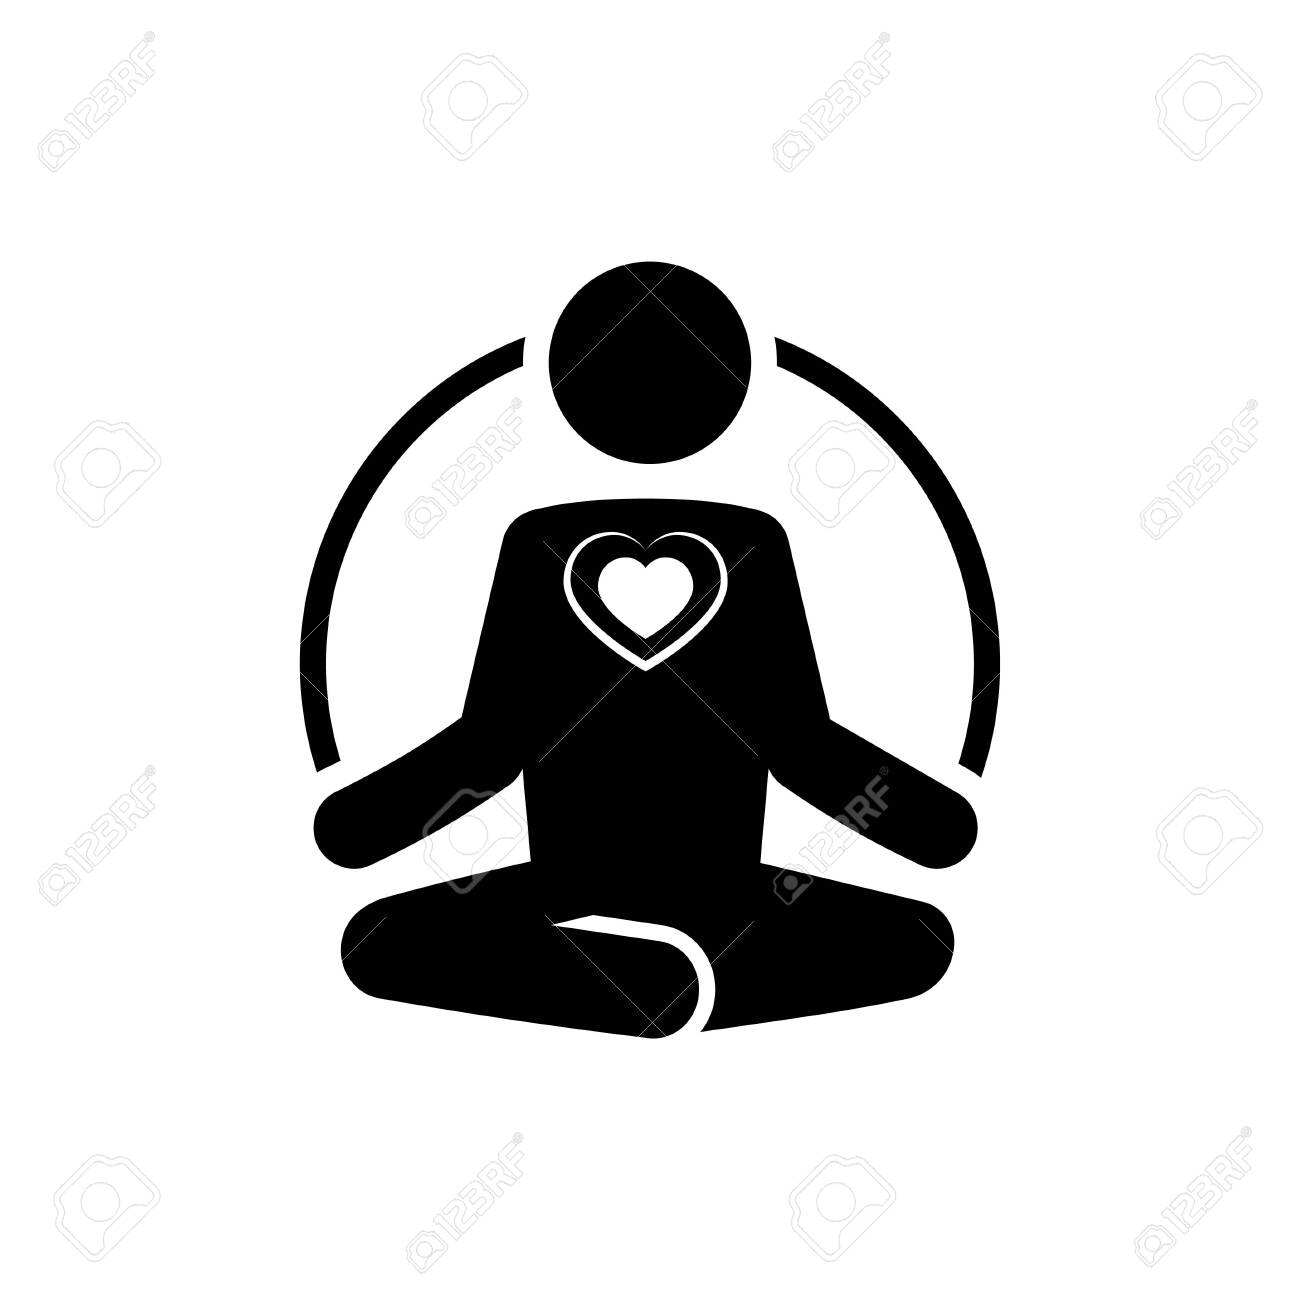 Yoga icon with heart. Meditate and love concept. - 132175121